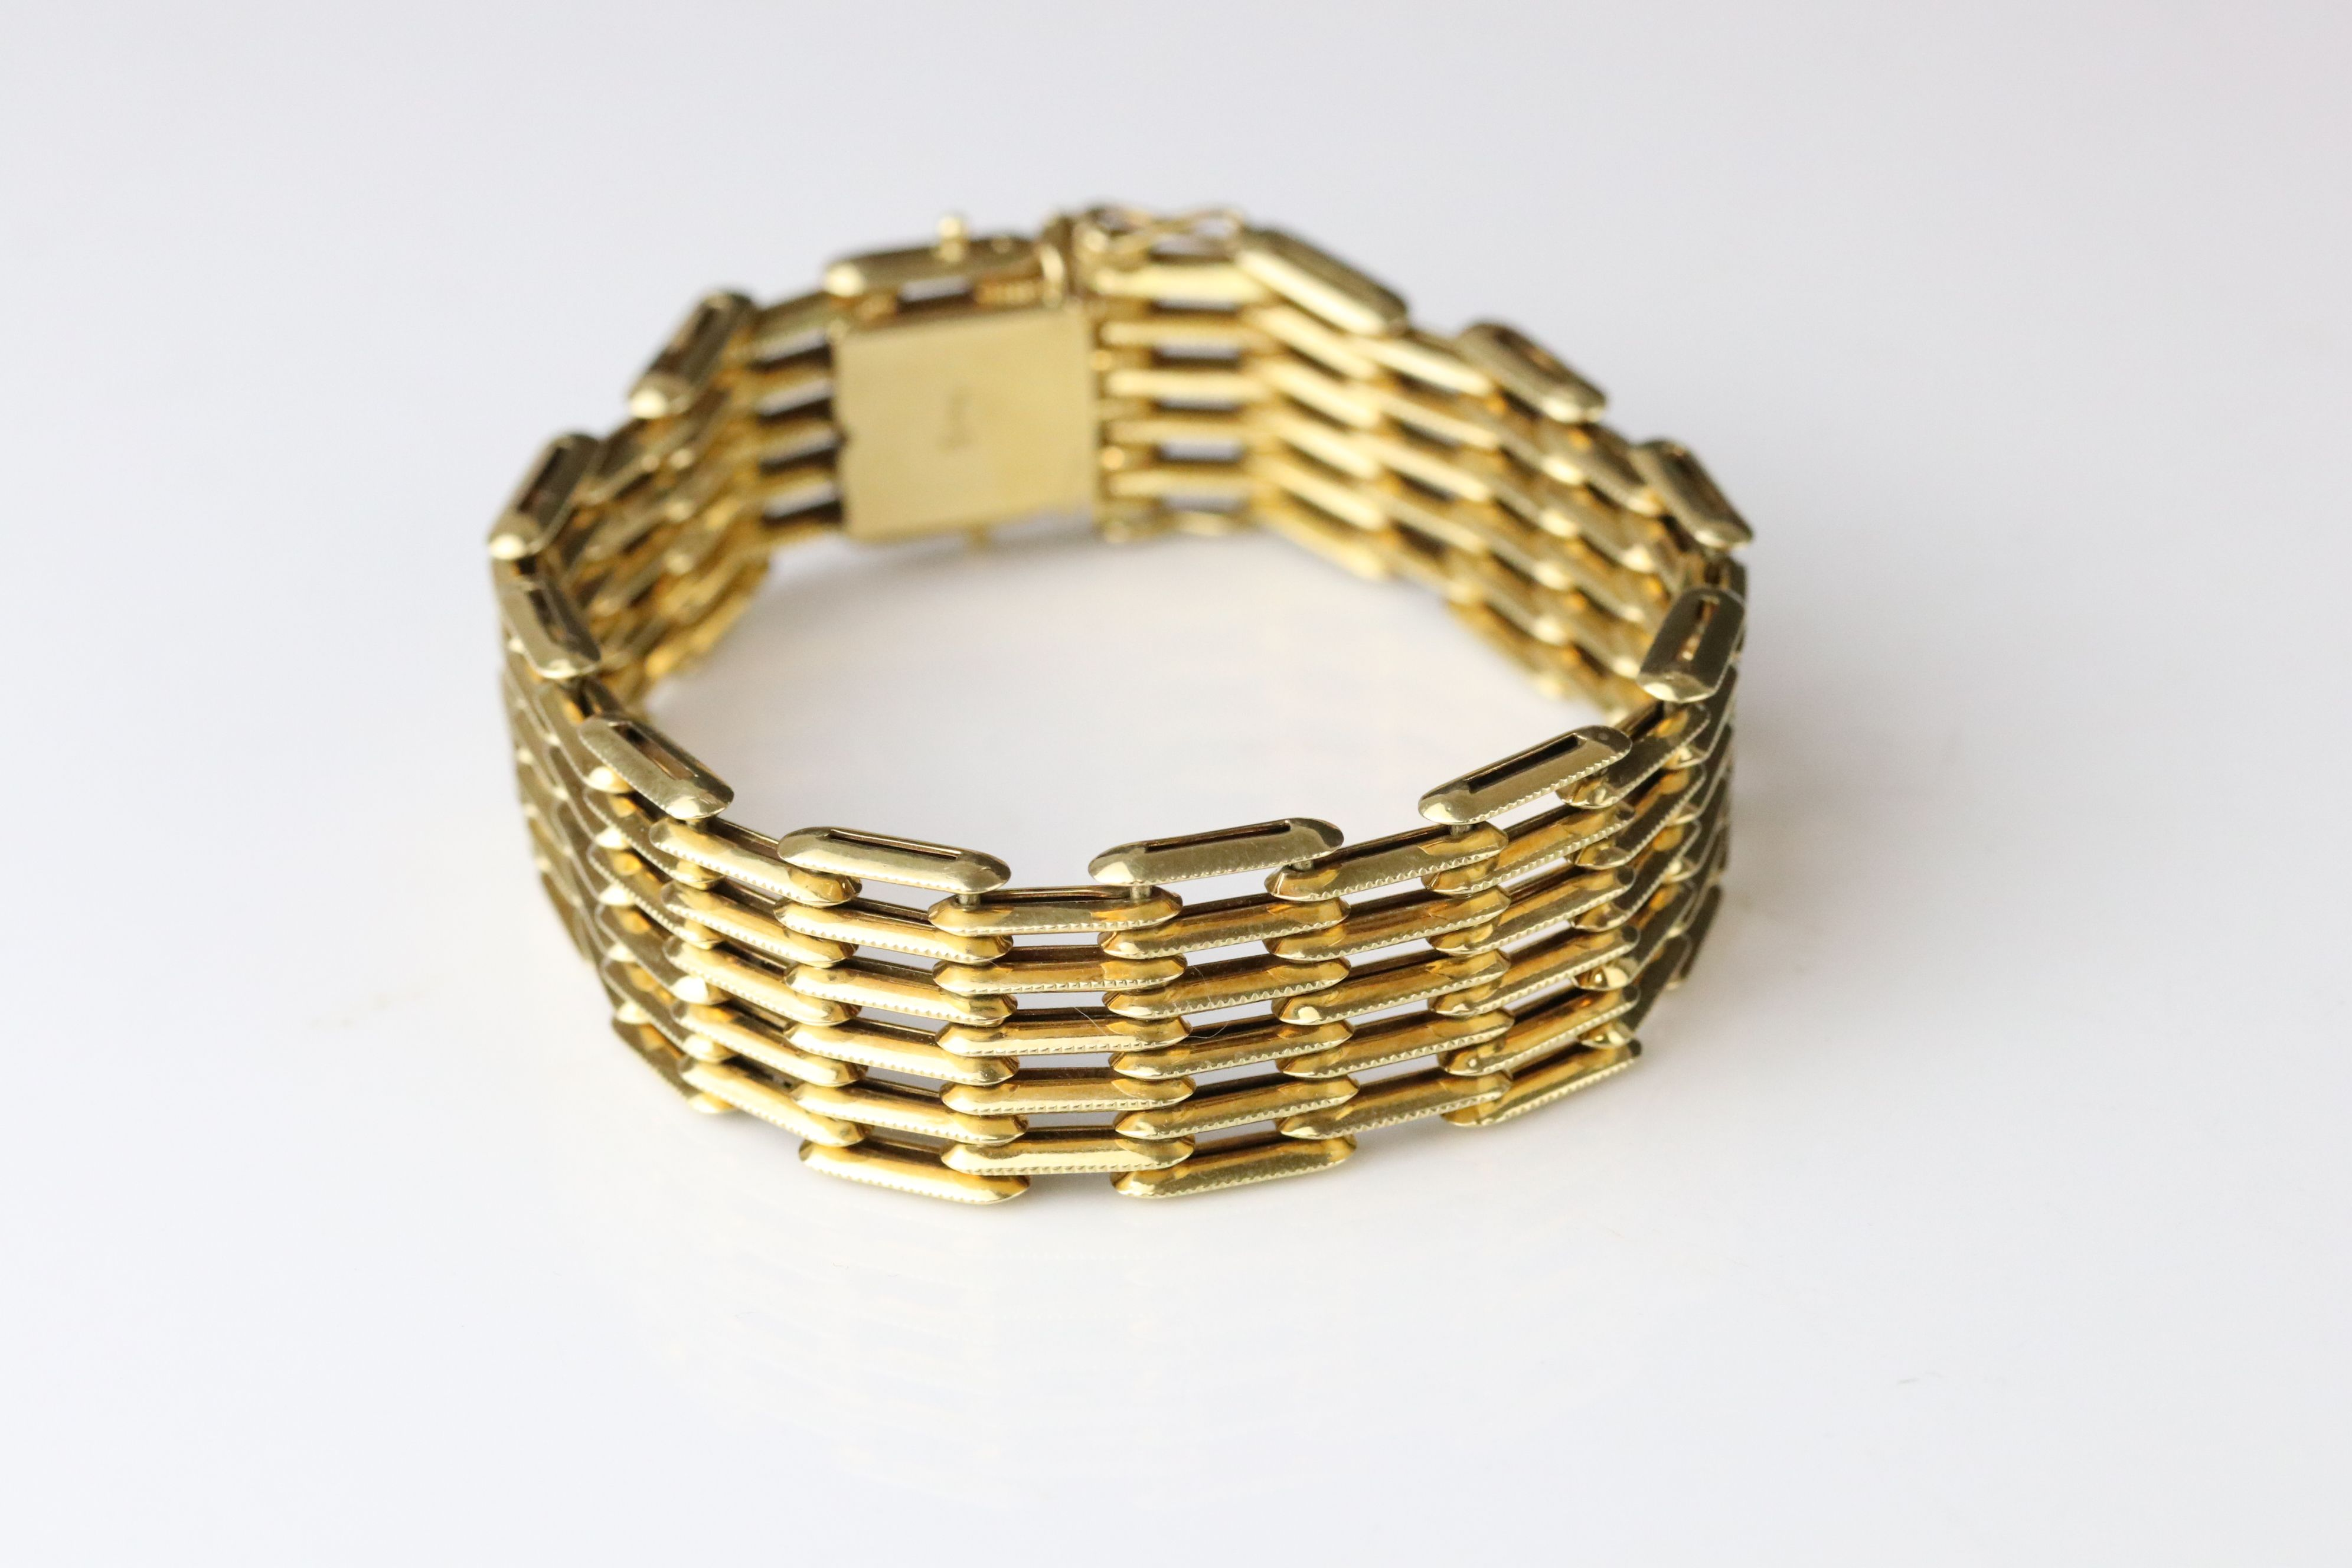 18ct yellow gold gate link style bracelet, tongue and box clasp, length approx 19cm